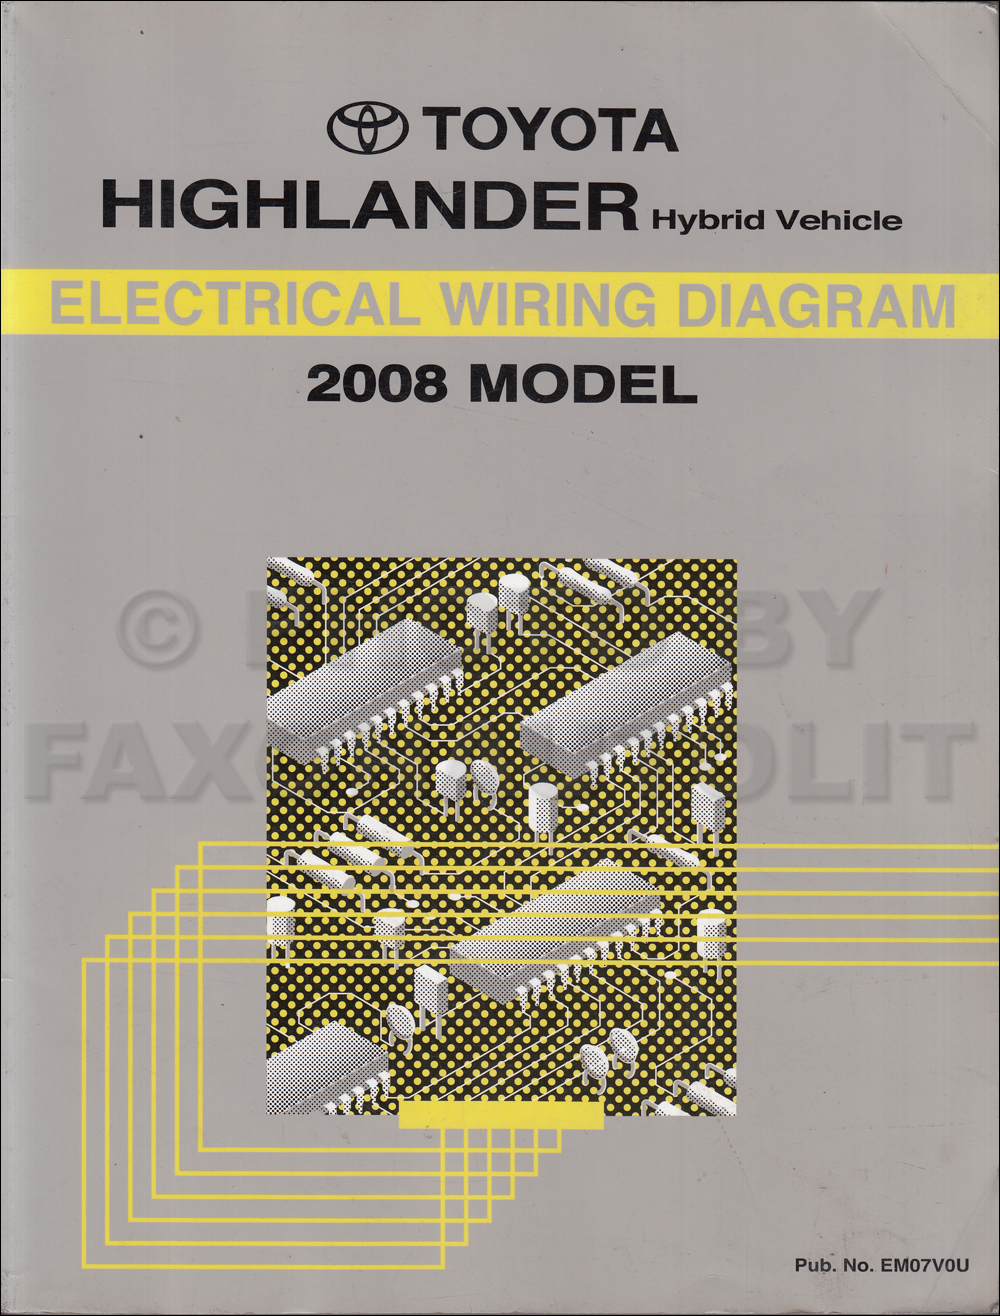 2008 toyota highlander wiring diagram manual original 2008 toyota highlander hybrid wiring diagram manual original hybrid swarovskicordoba Choice Image